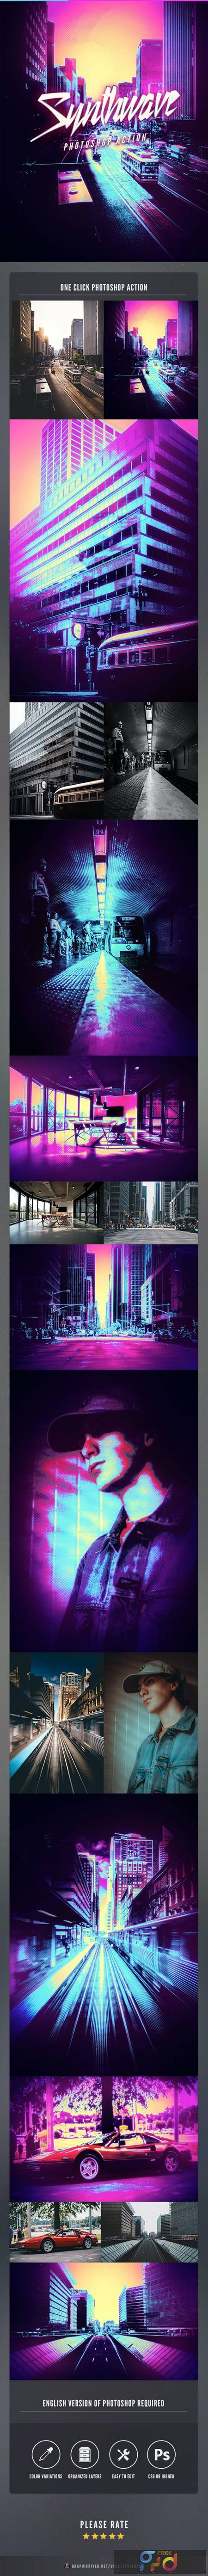 Synthwave Photoshop Action 26691788 1